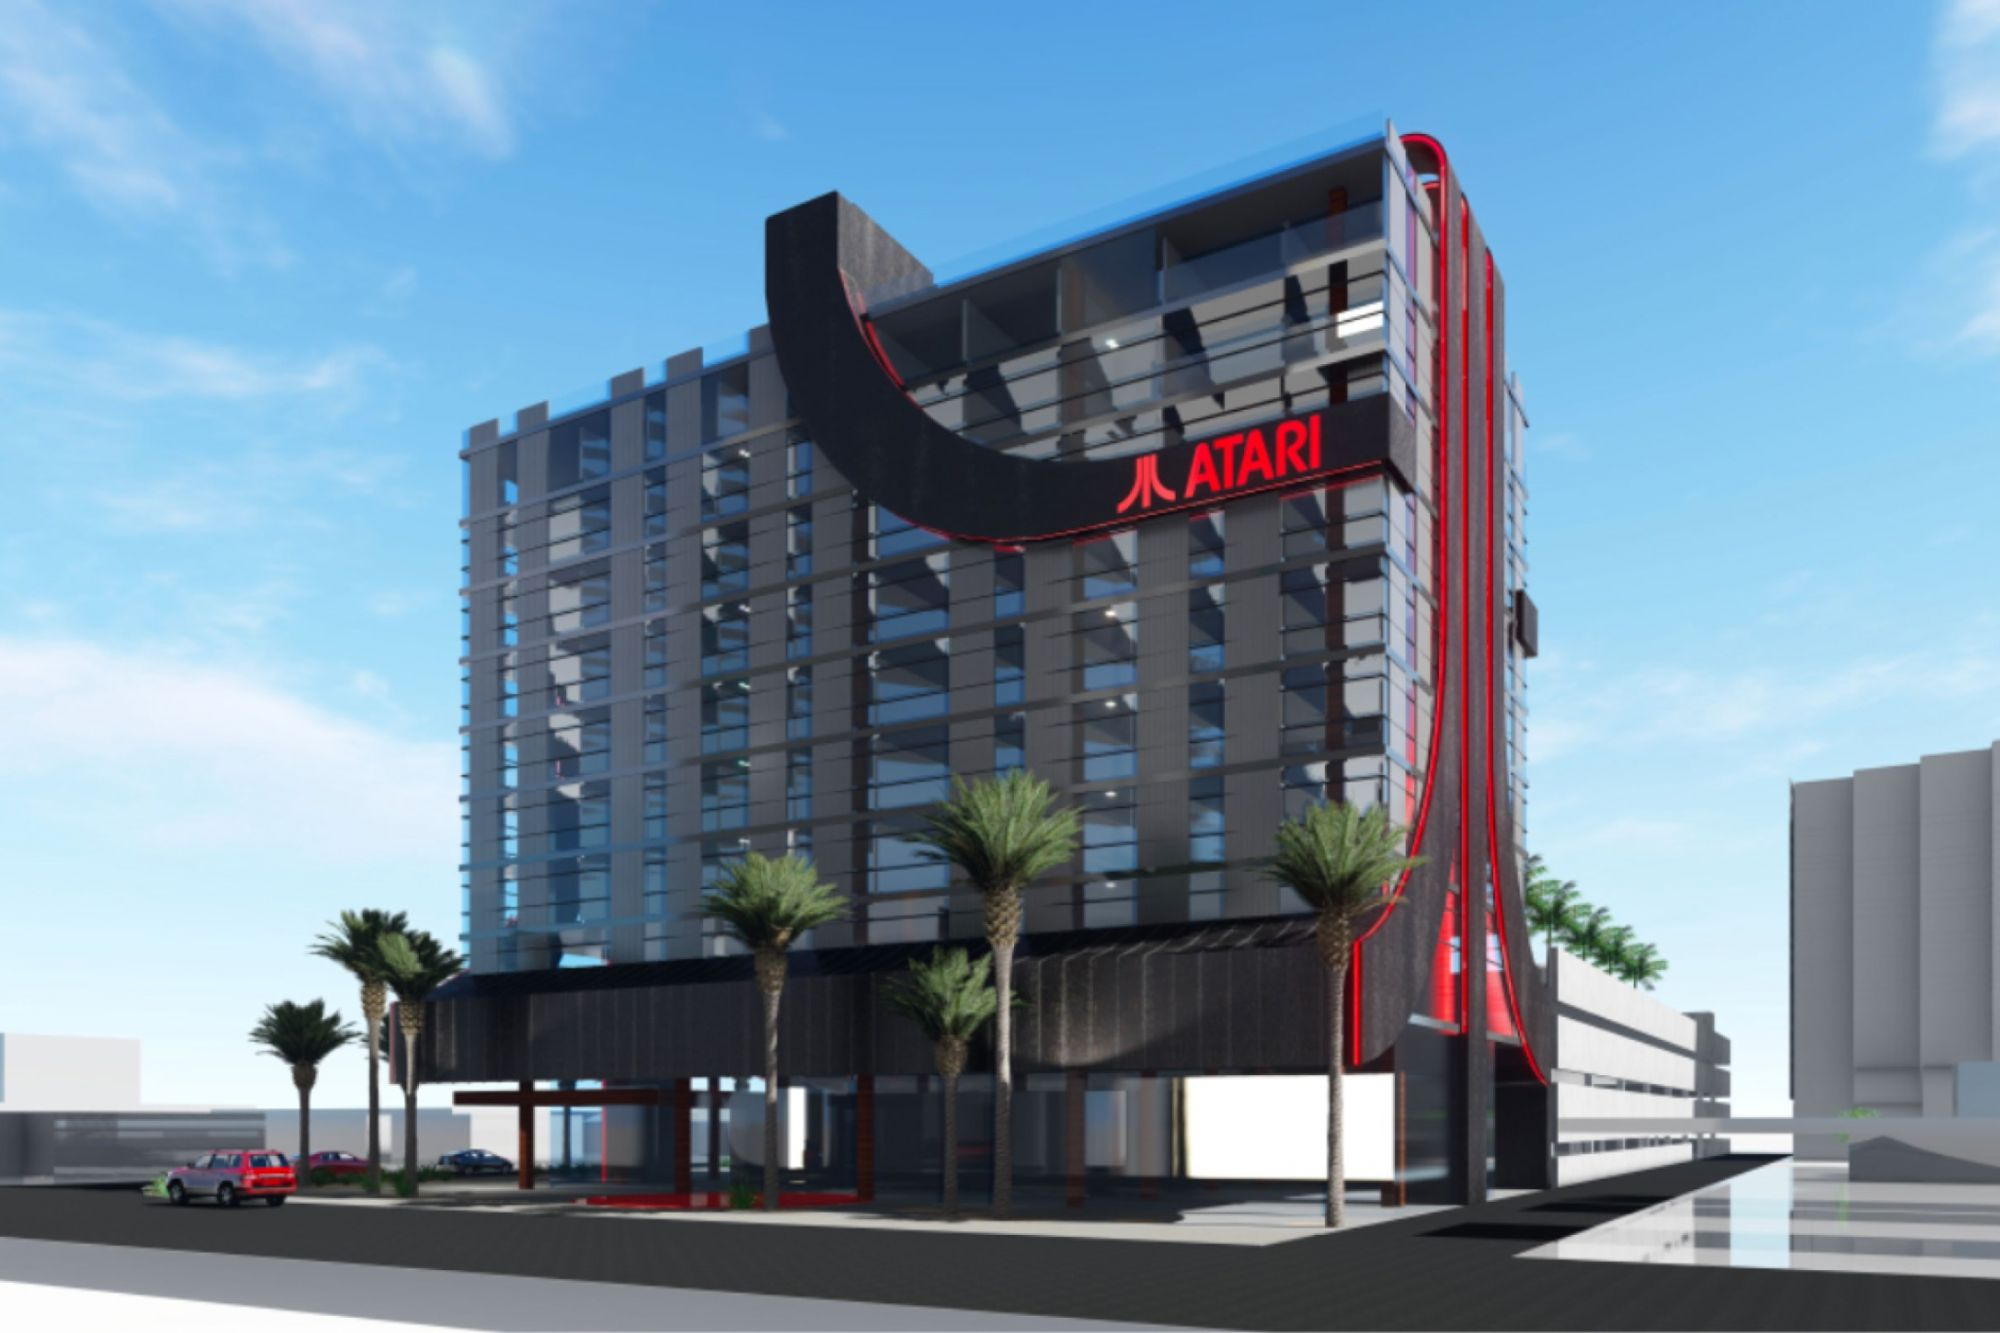 Atari Wants to Build Video Game-Themed Hotels